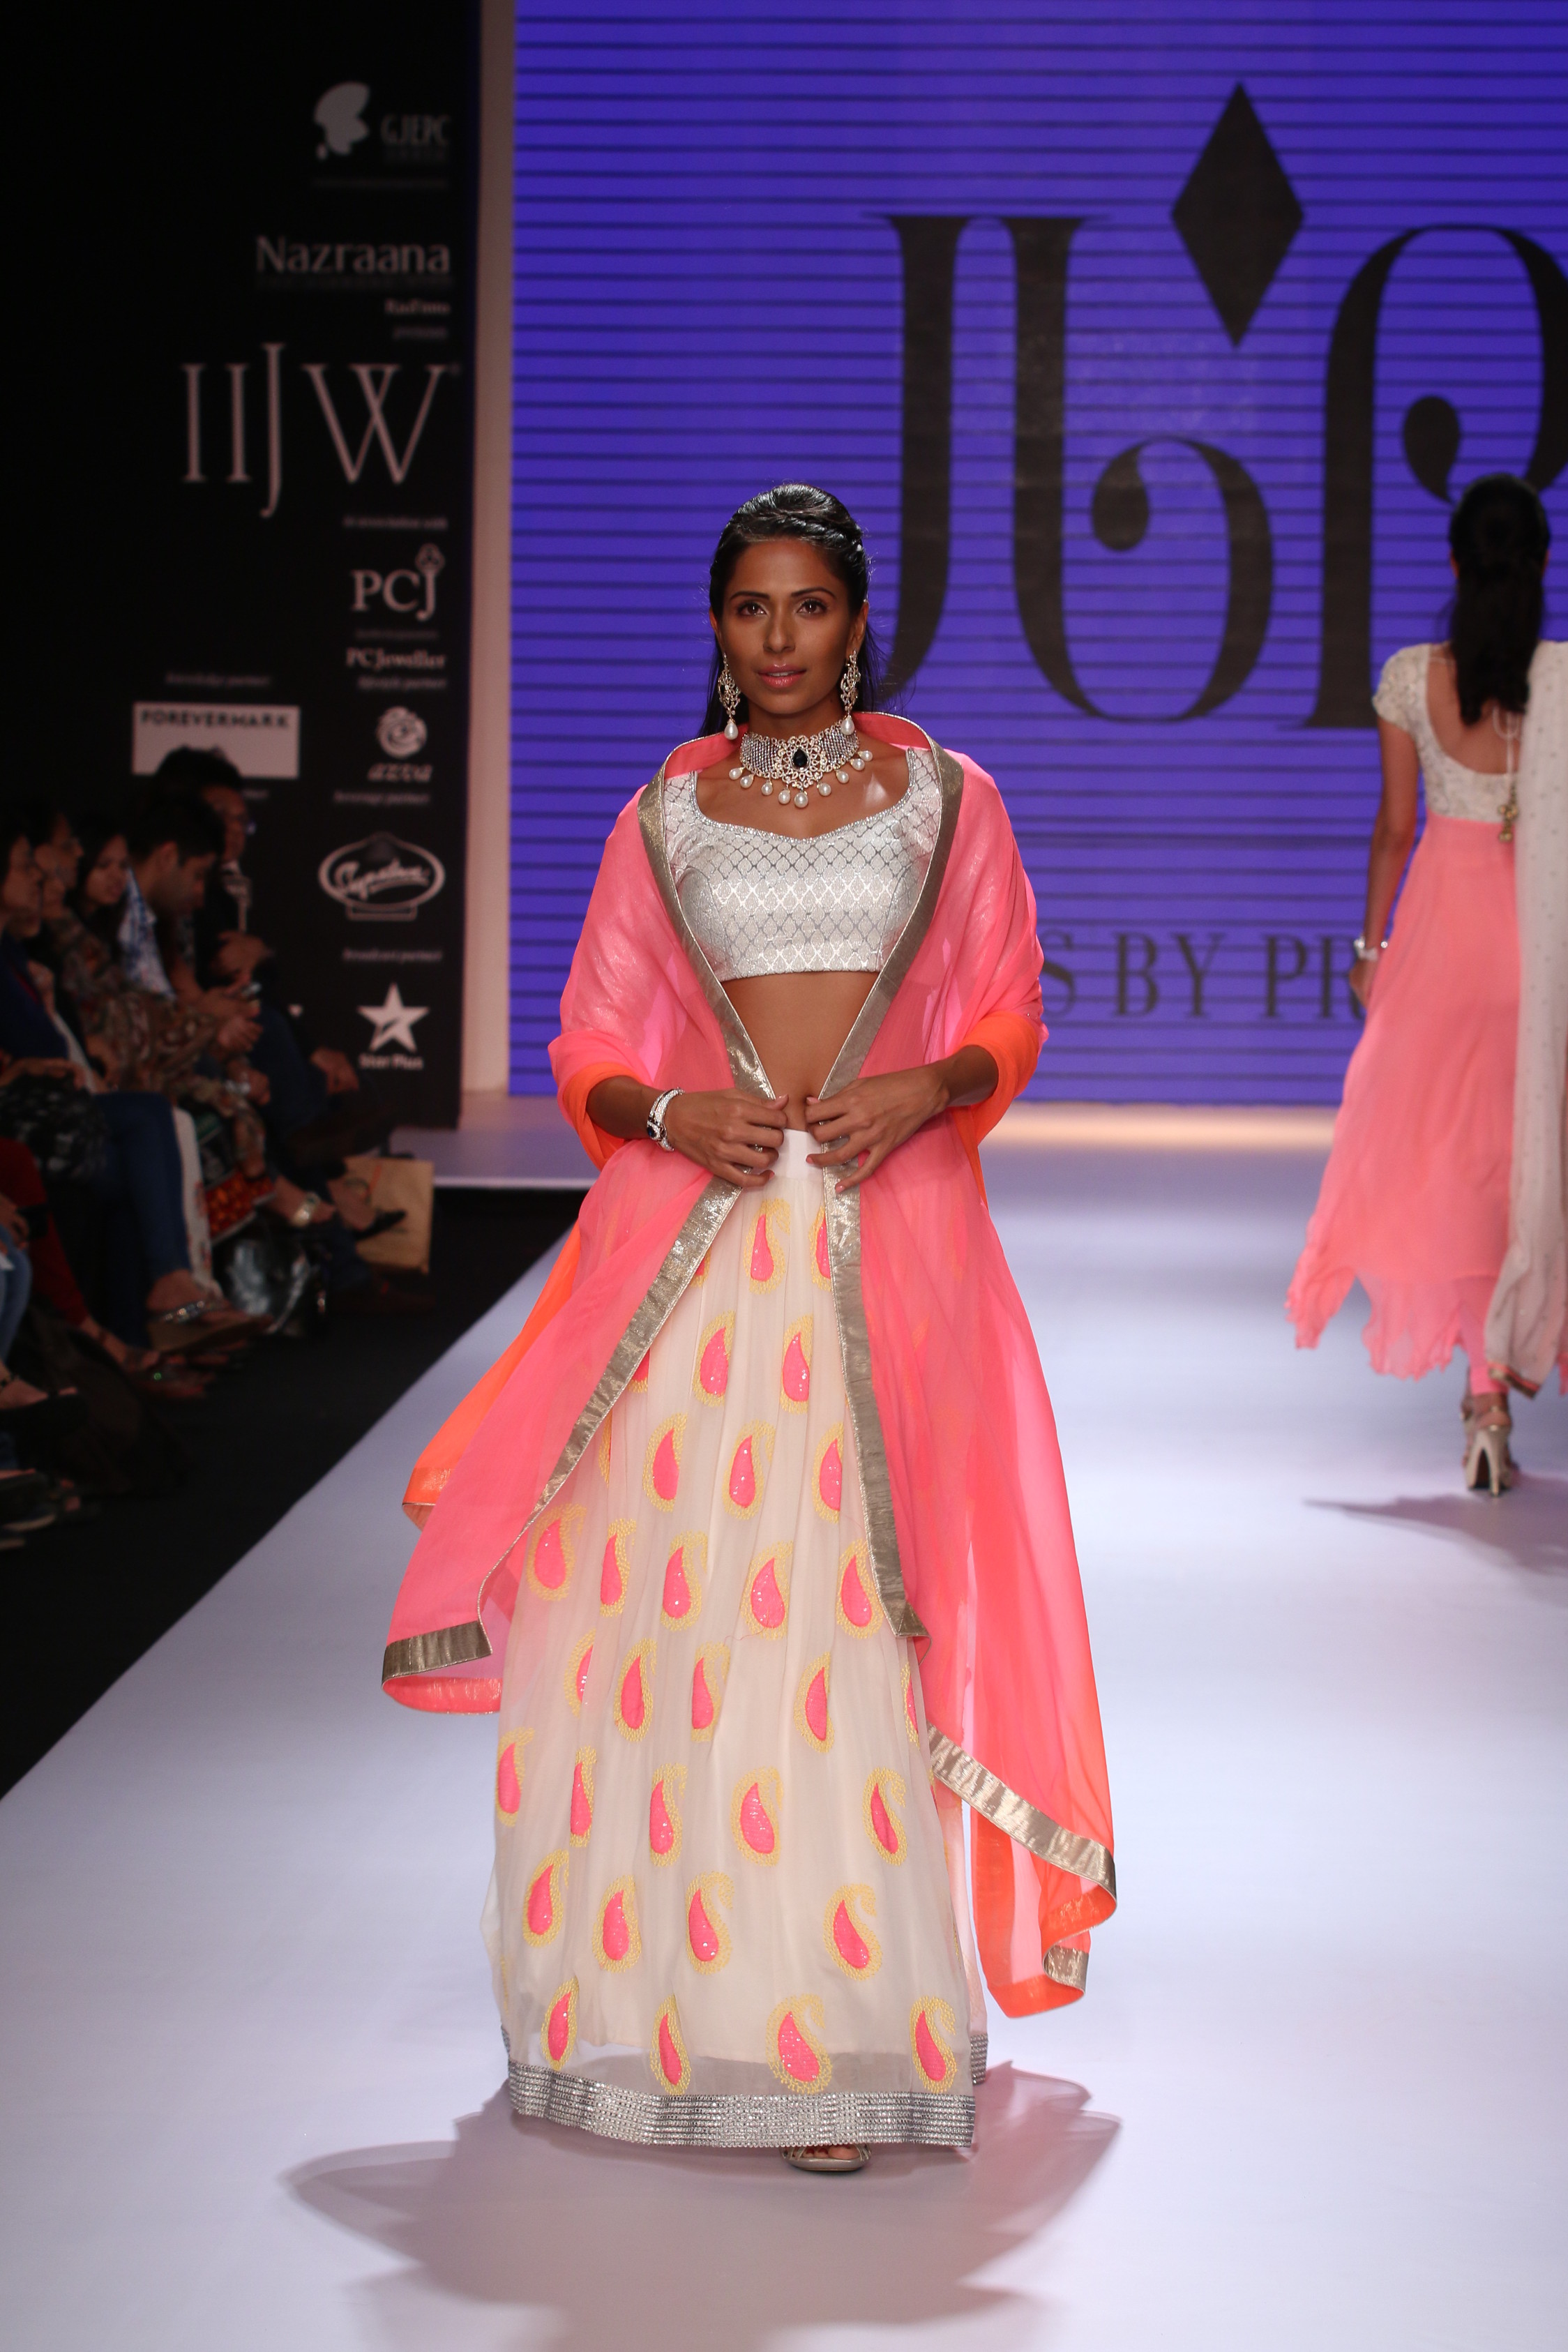 Seen at India International jewellery week - a model walking for Jewels by Preeti 3.JPG